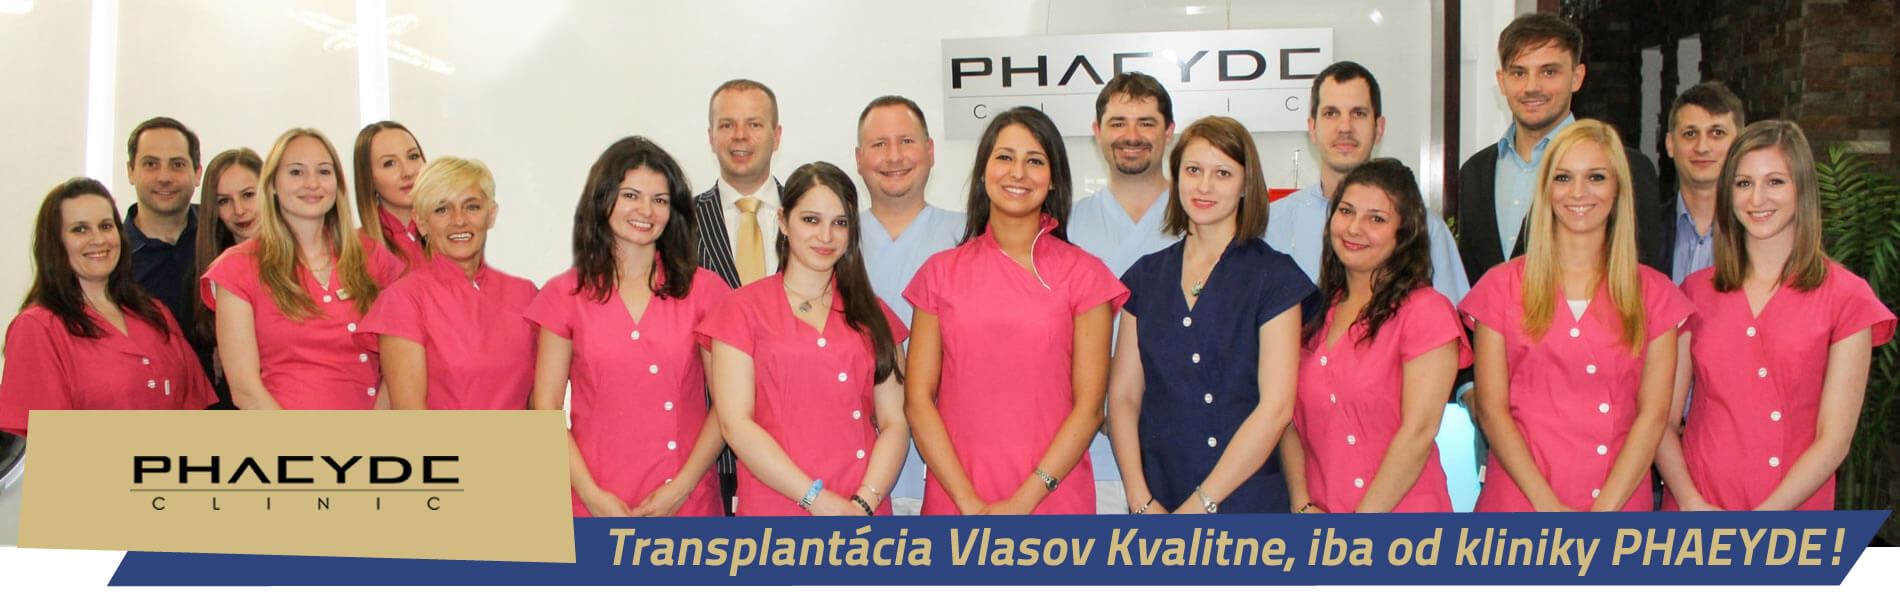 PHAEYDE Hair Transplantation Sale